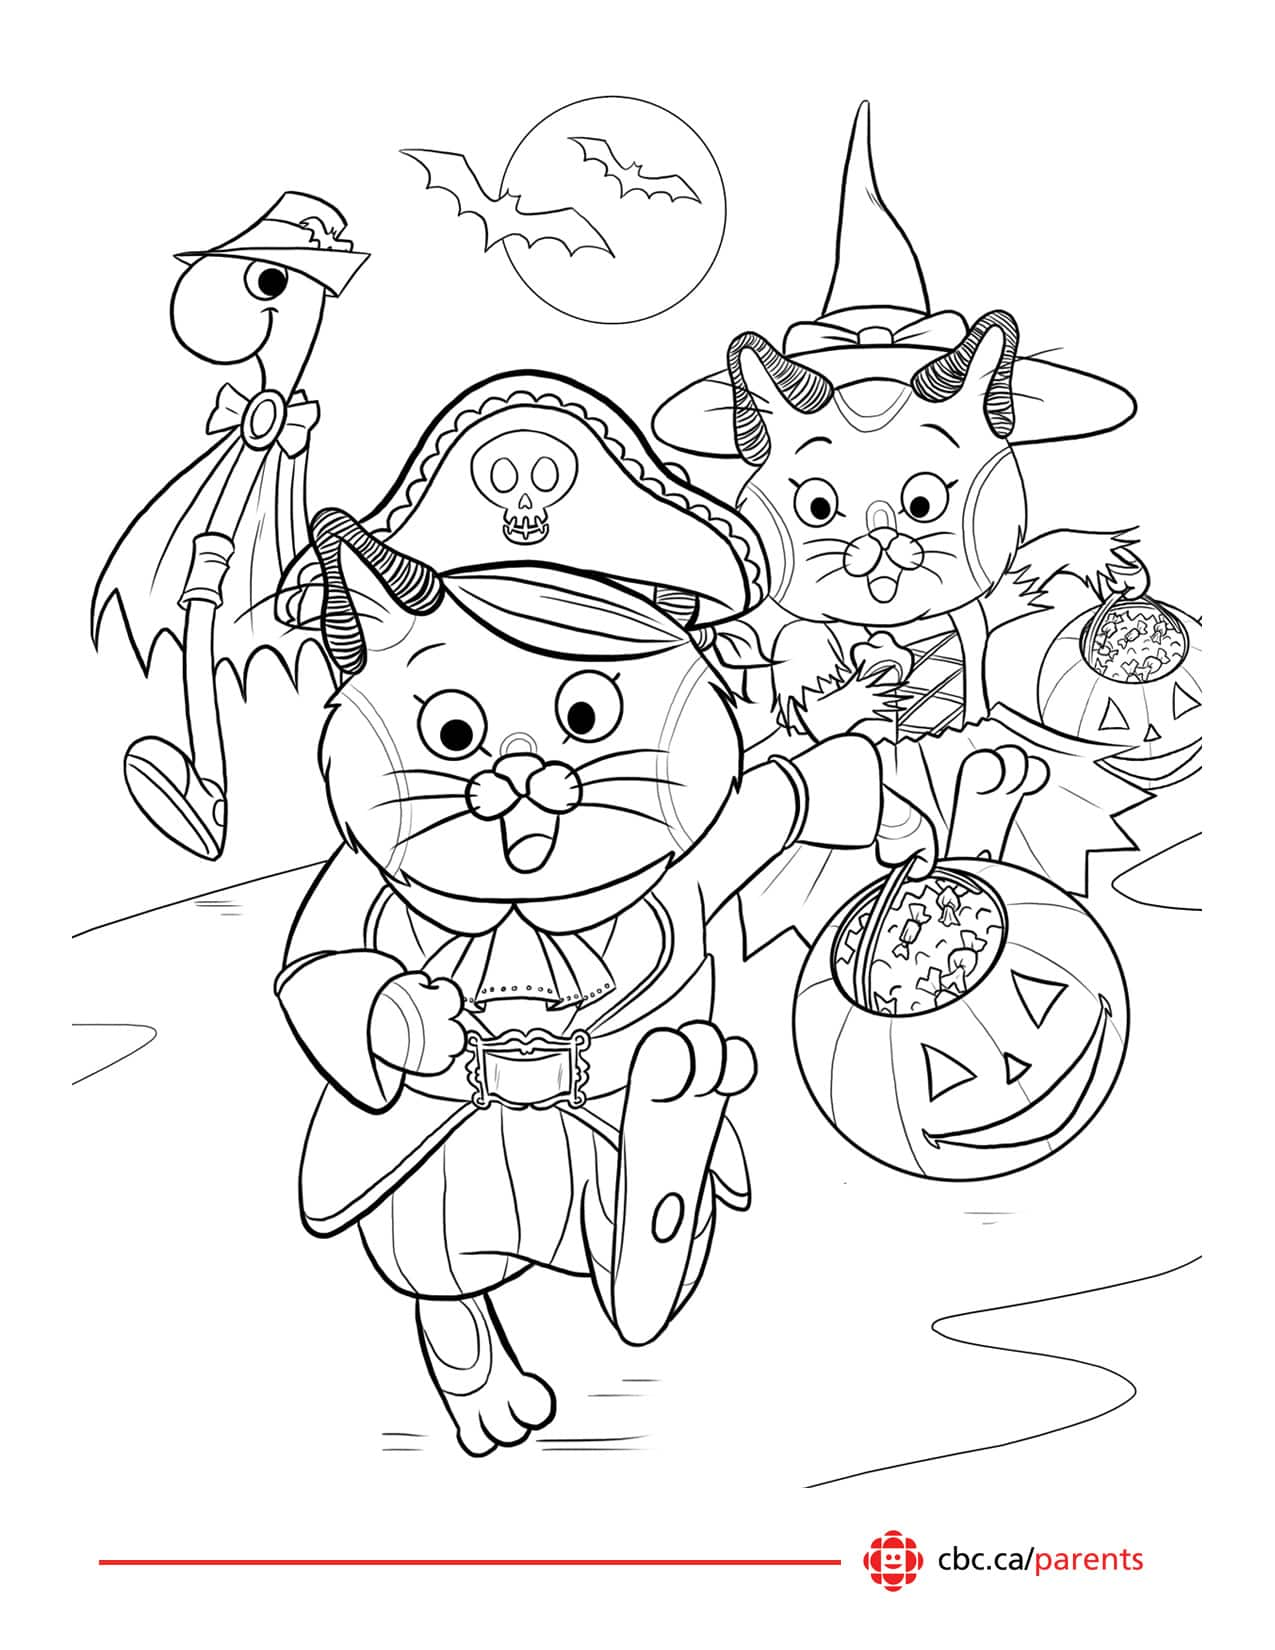 Printable halloween colouring pages play cbc parents for Busy coloring pages